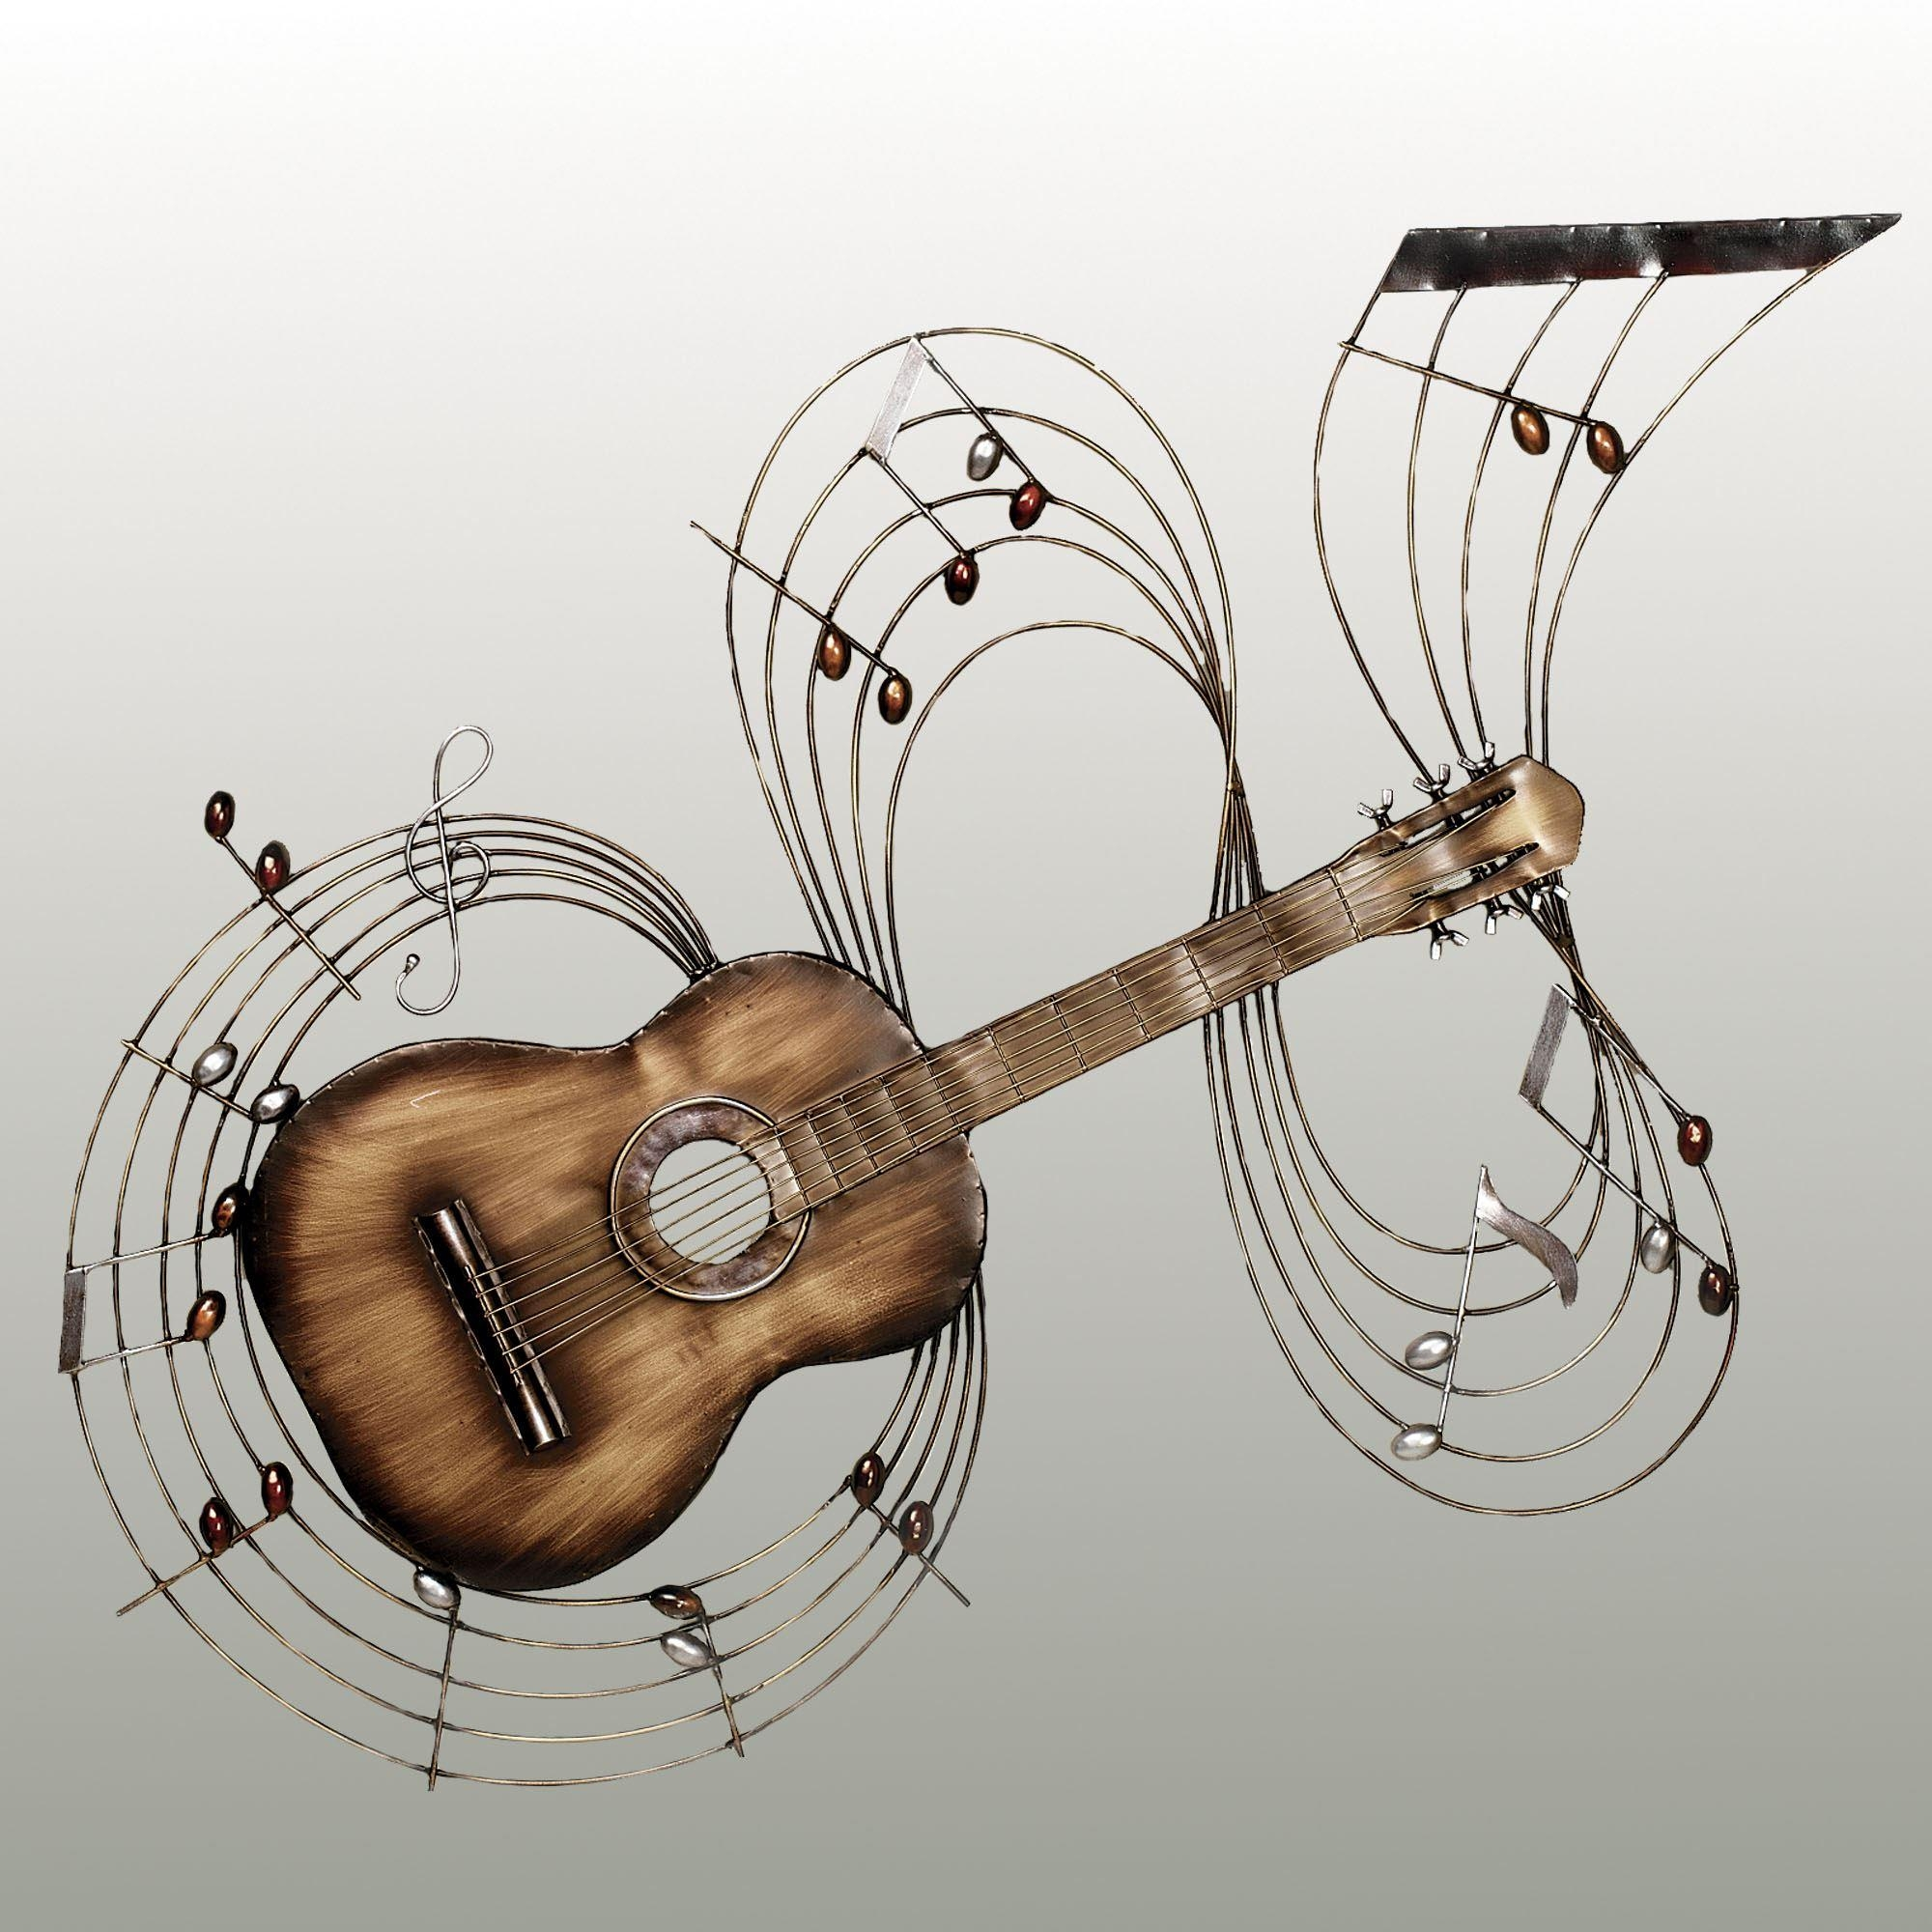 20 collection of guitar metal wall art wall art ideas. Black Bedroom Furniture Sets. Home Design Ideas